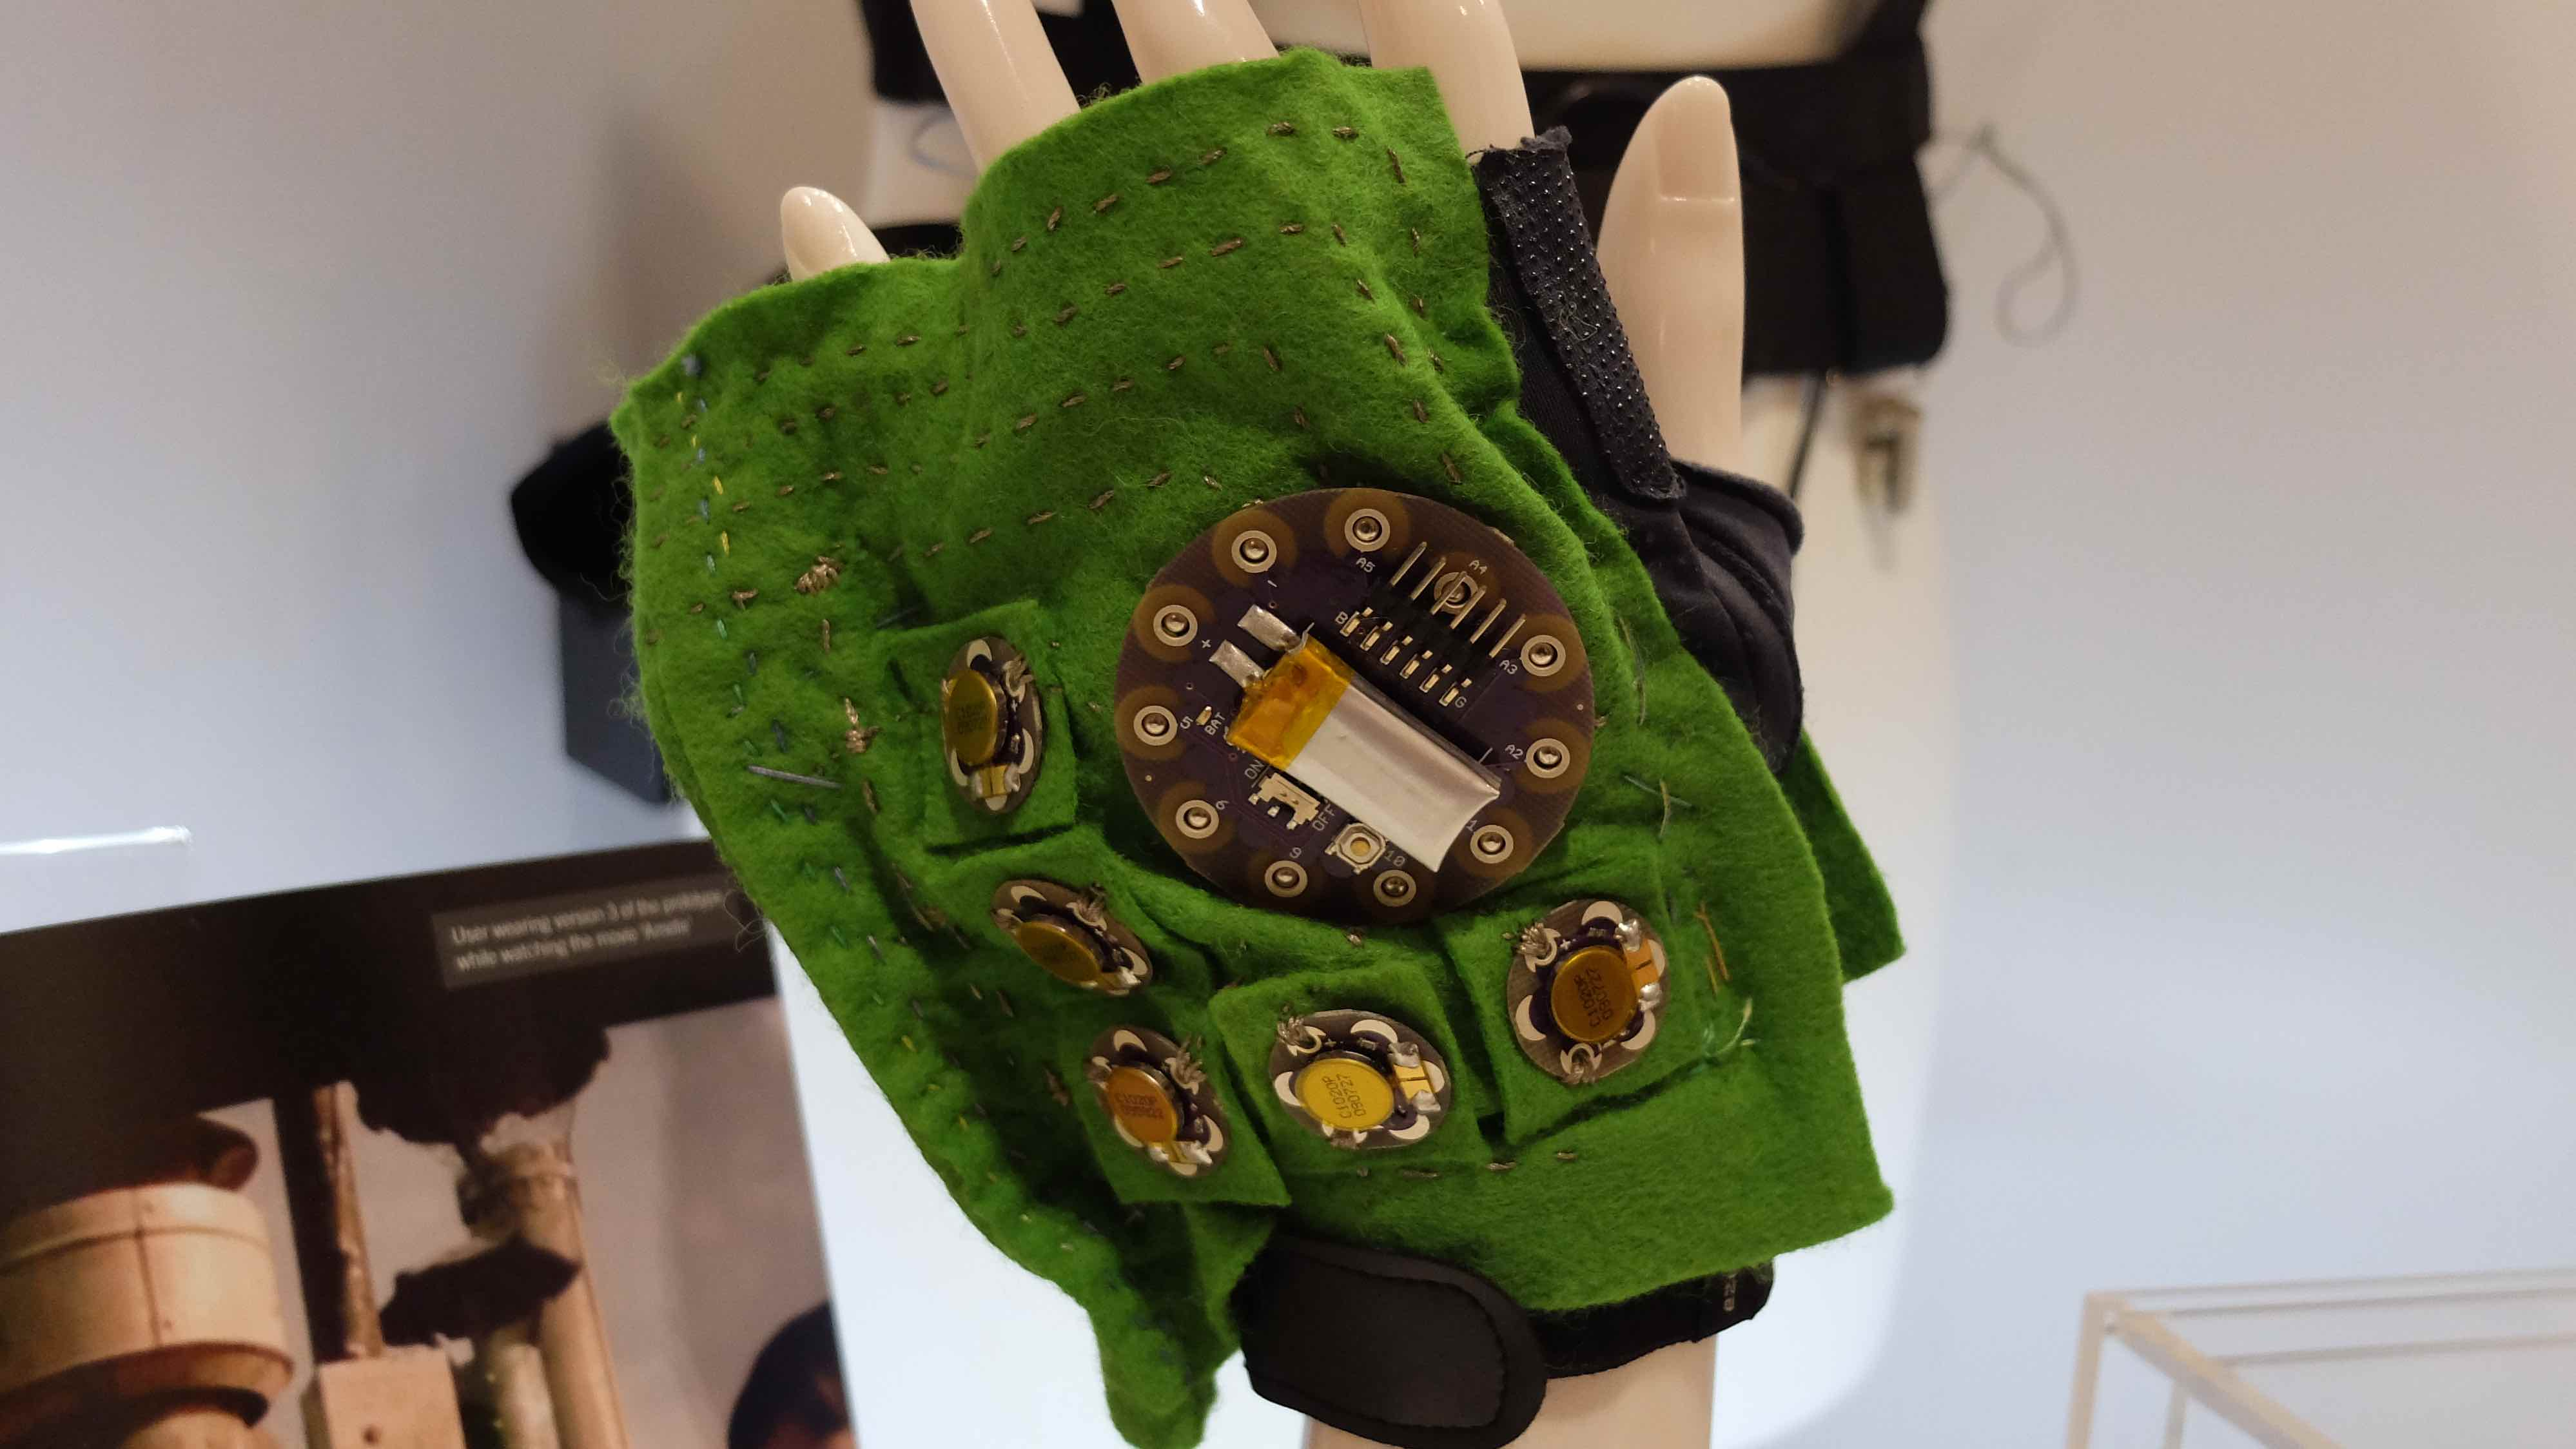 Wearables from Queen Mary's University labs